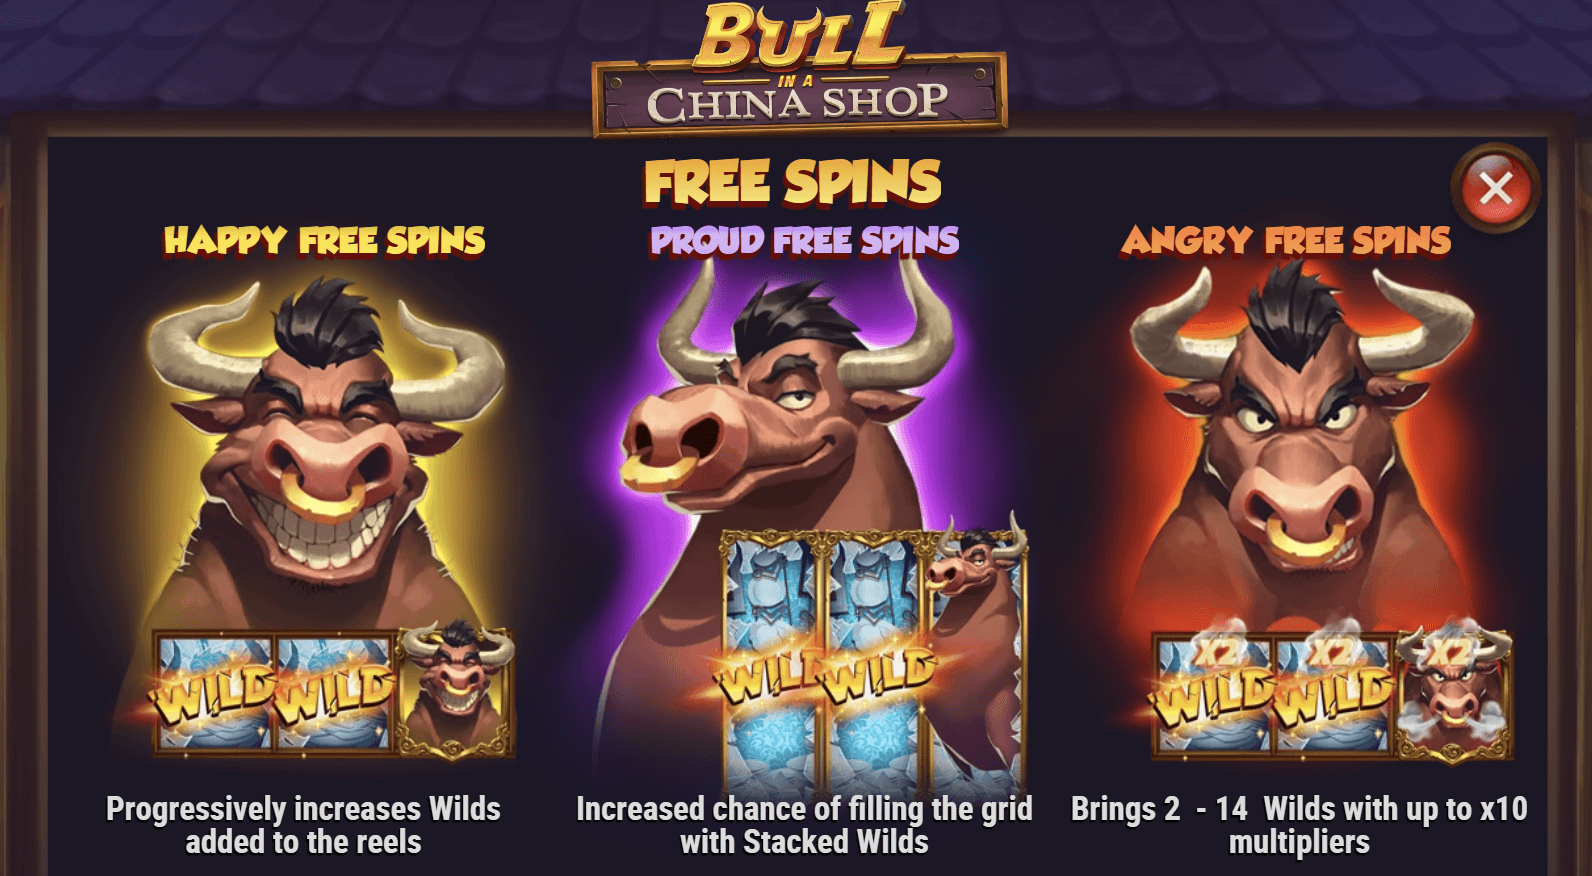 Bull in a China Shop Free Spins